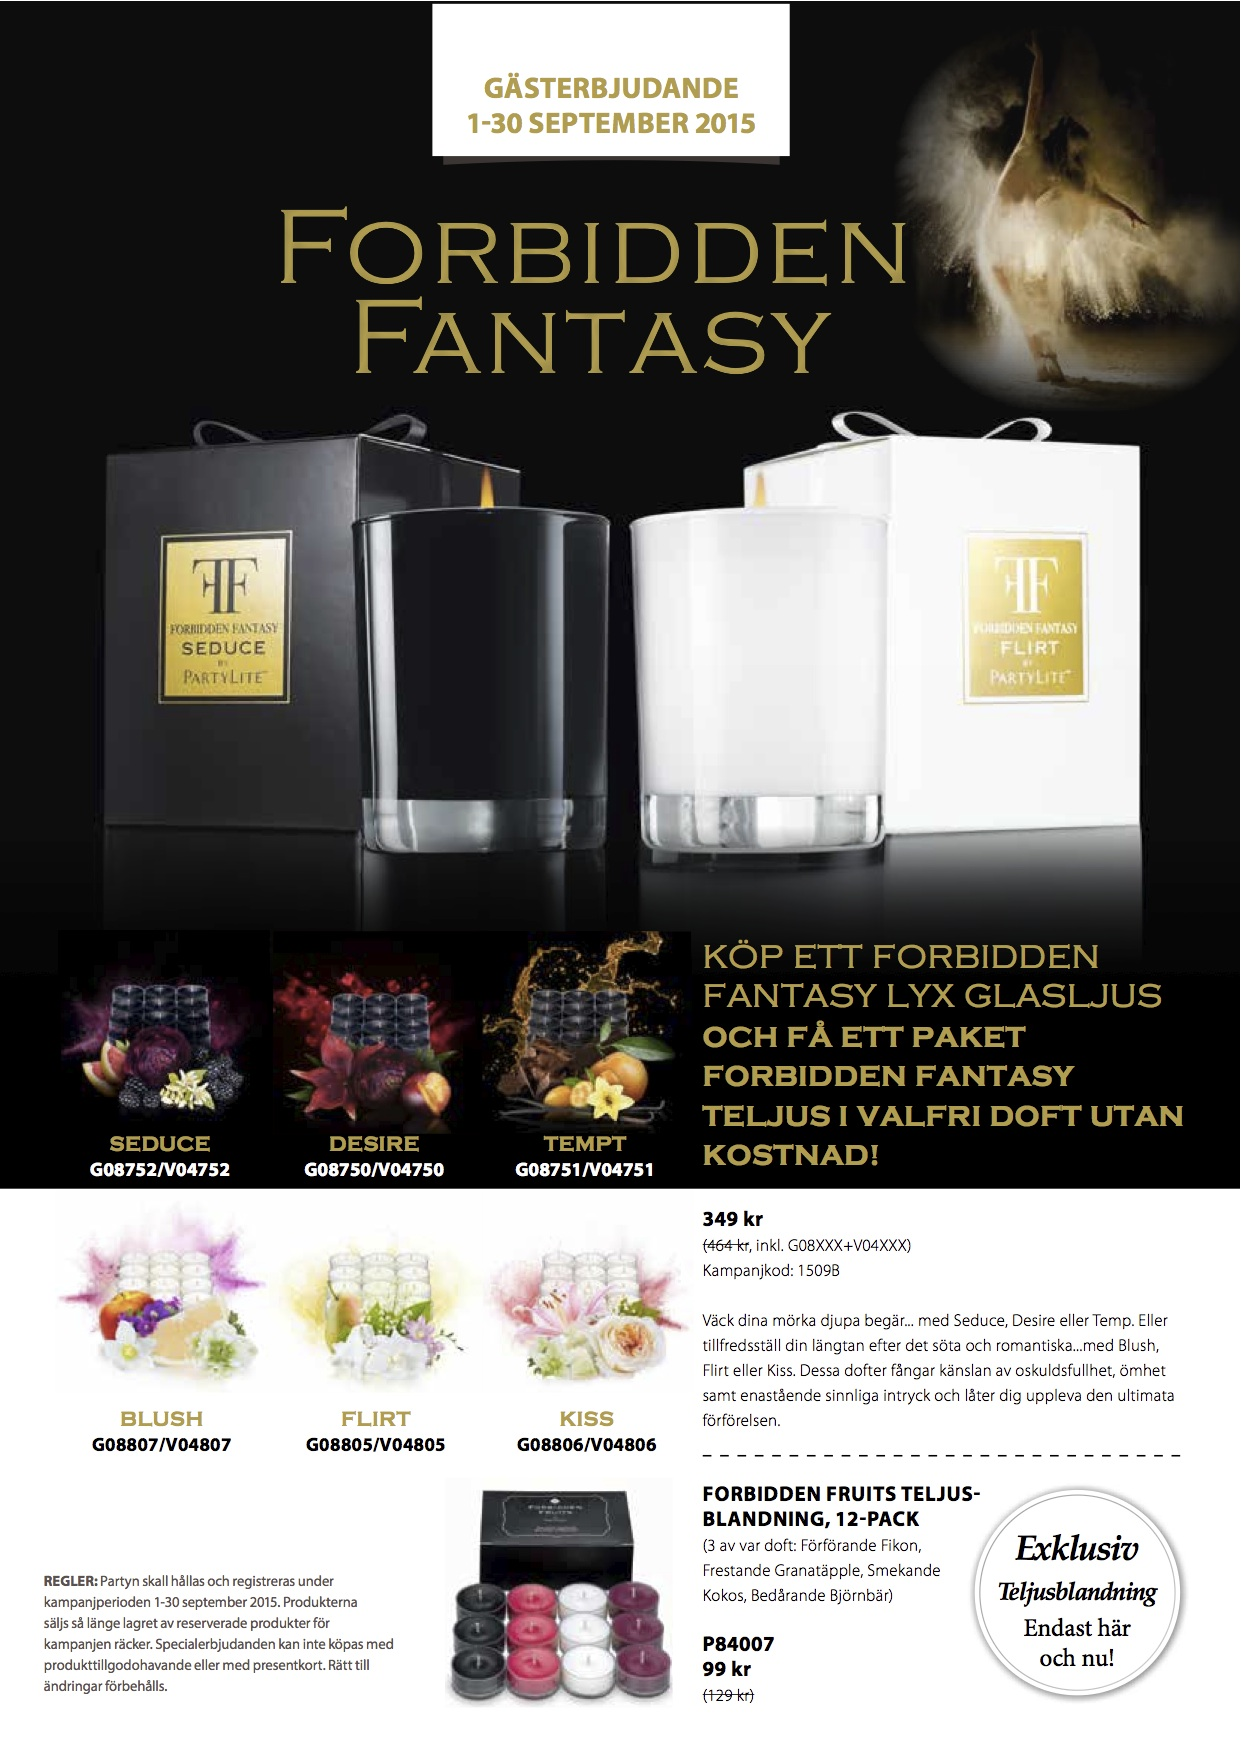 PartyLite forbidden sep 2015